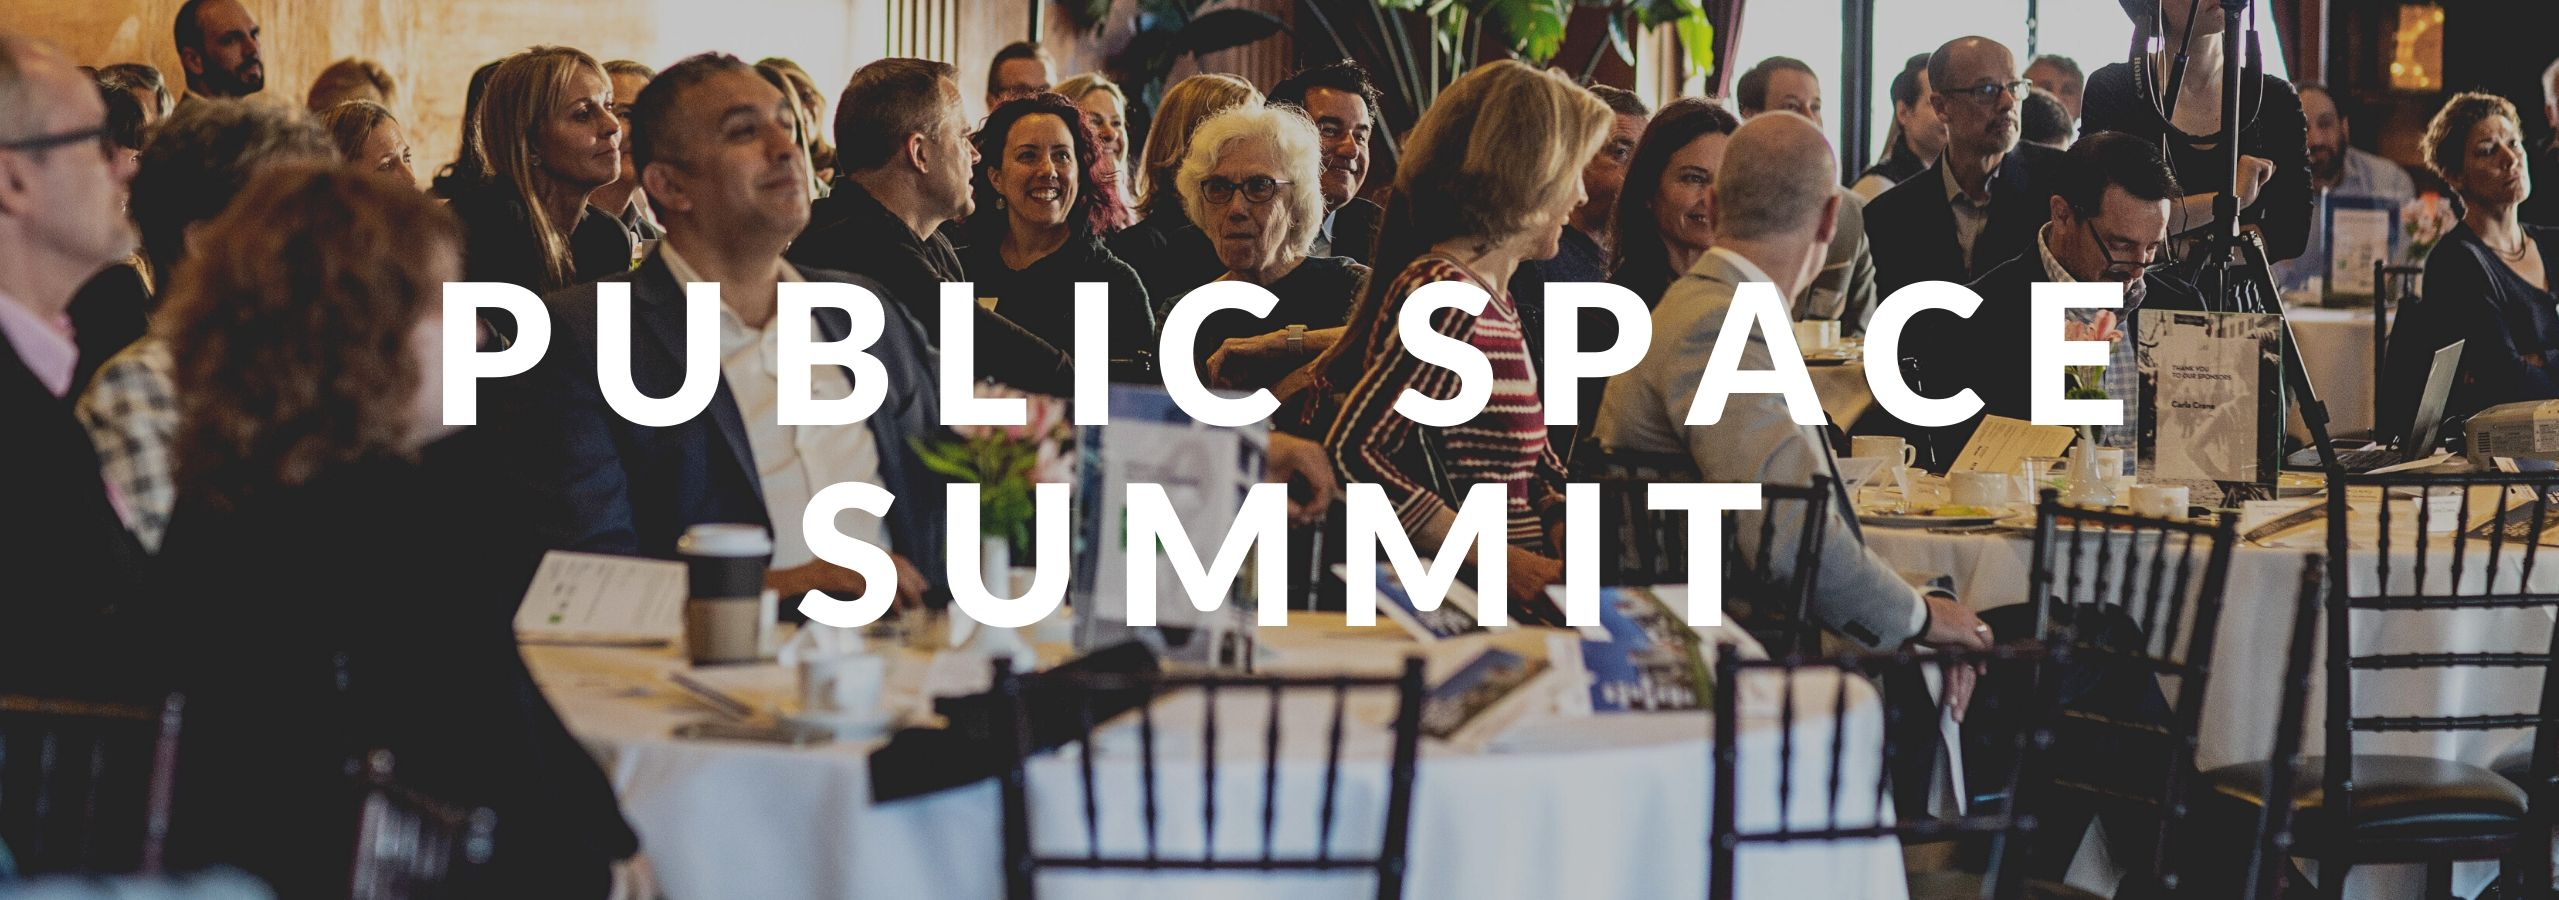 Public Space Summit